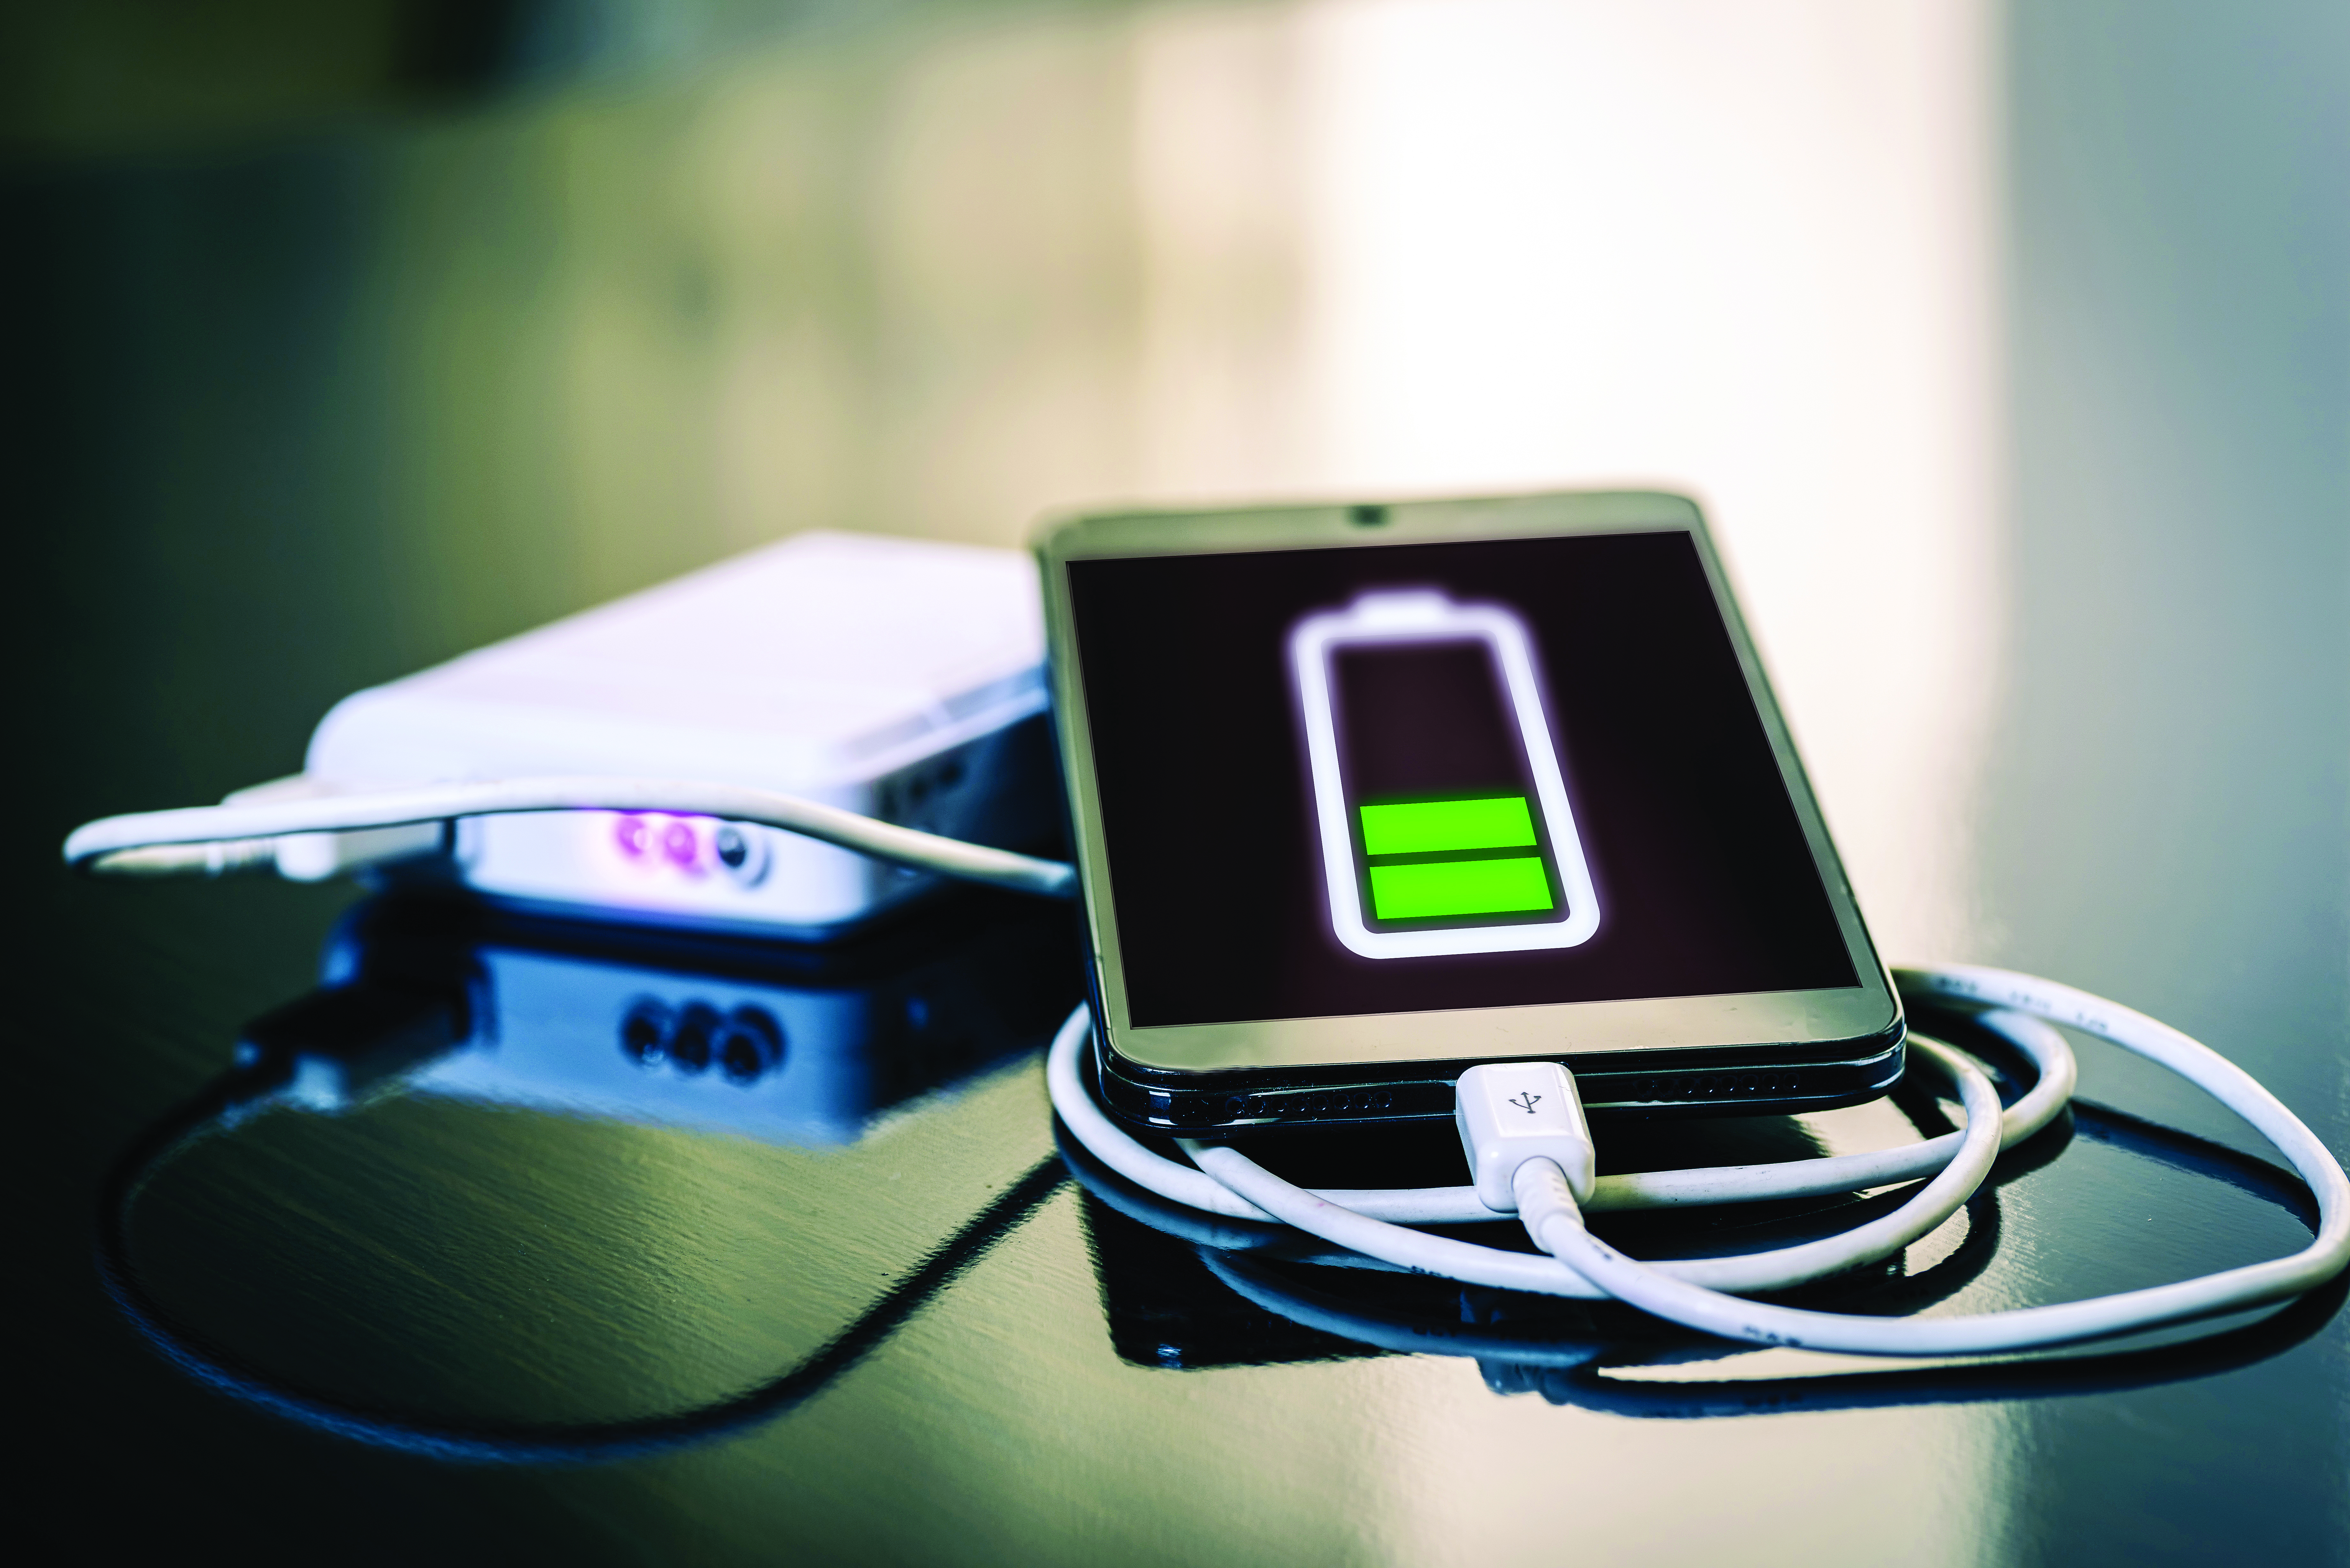 No power banks in checked-in baggage, say airlines officials in Oman